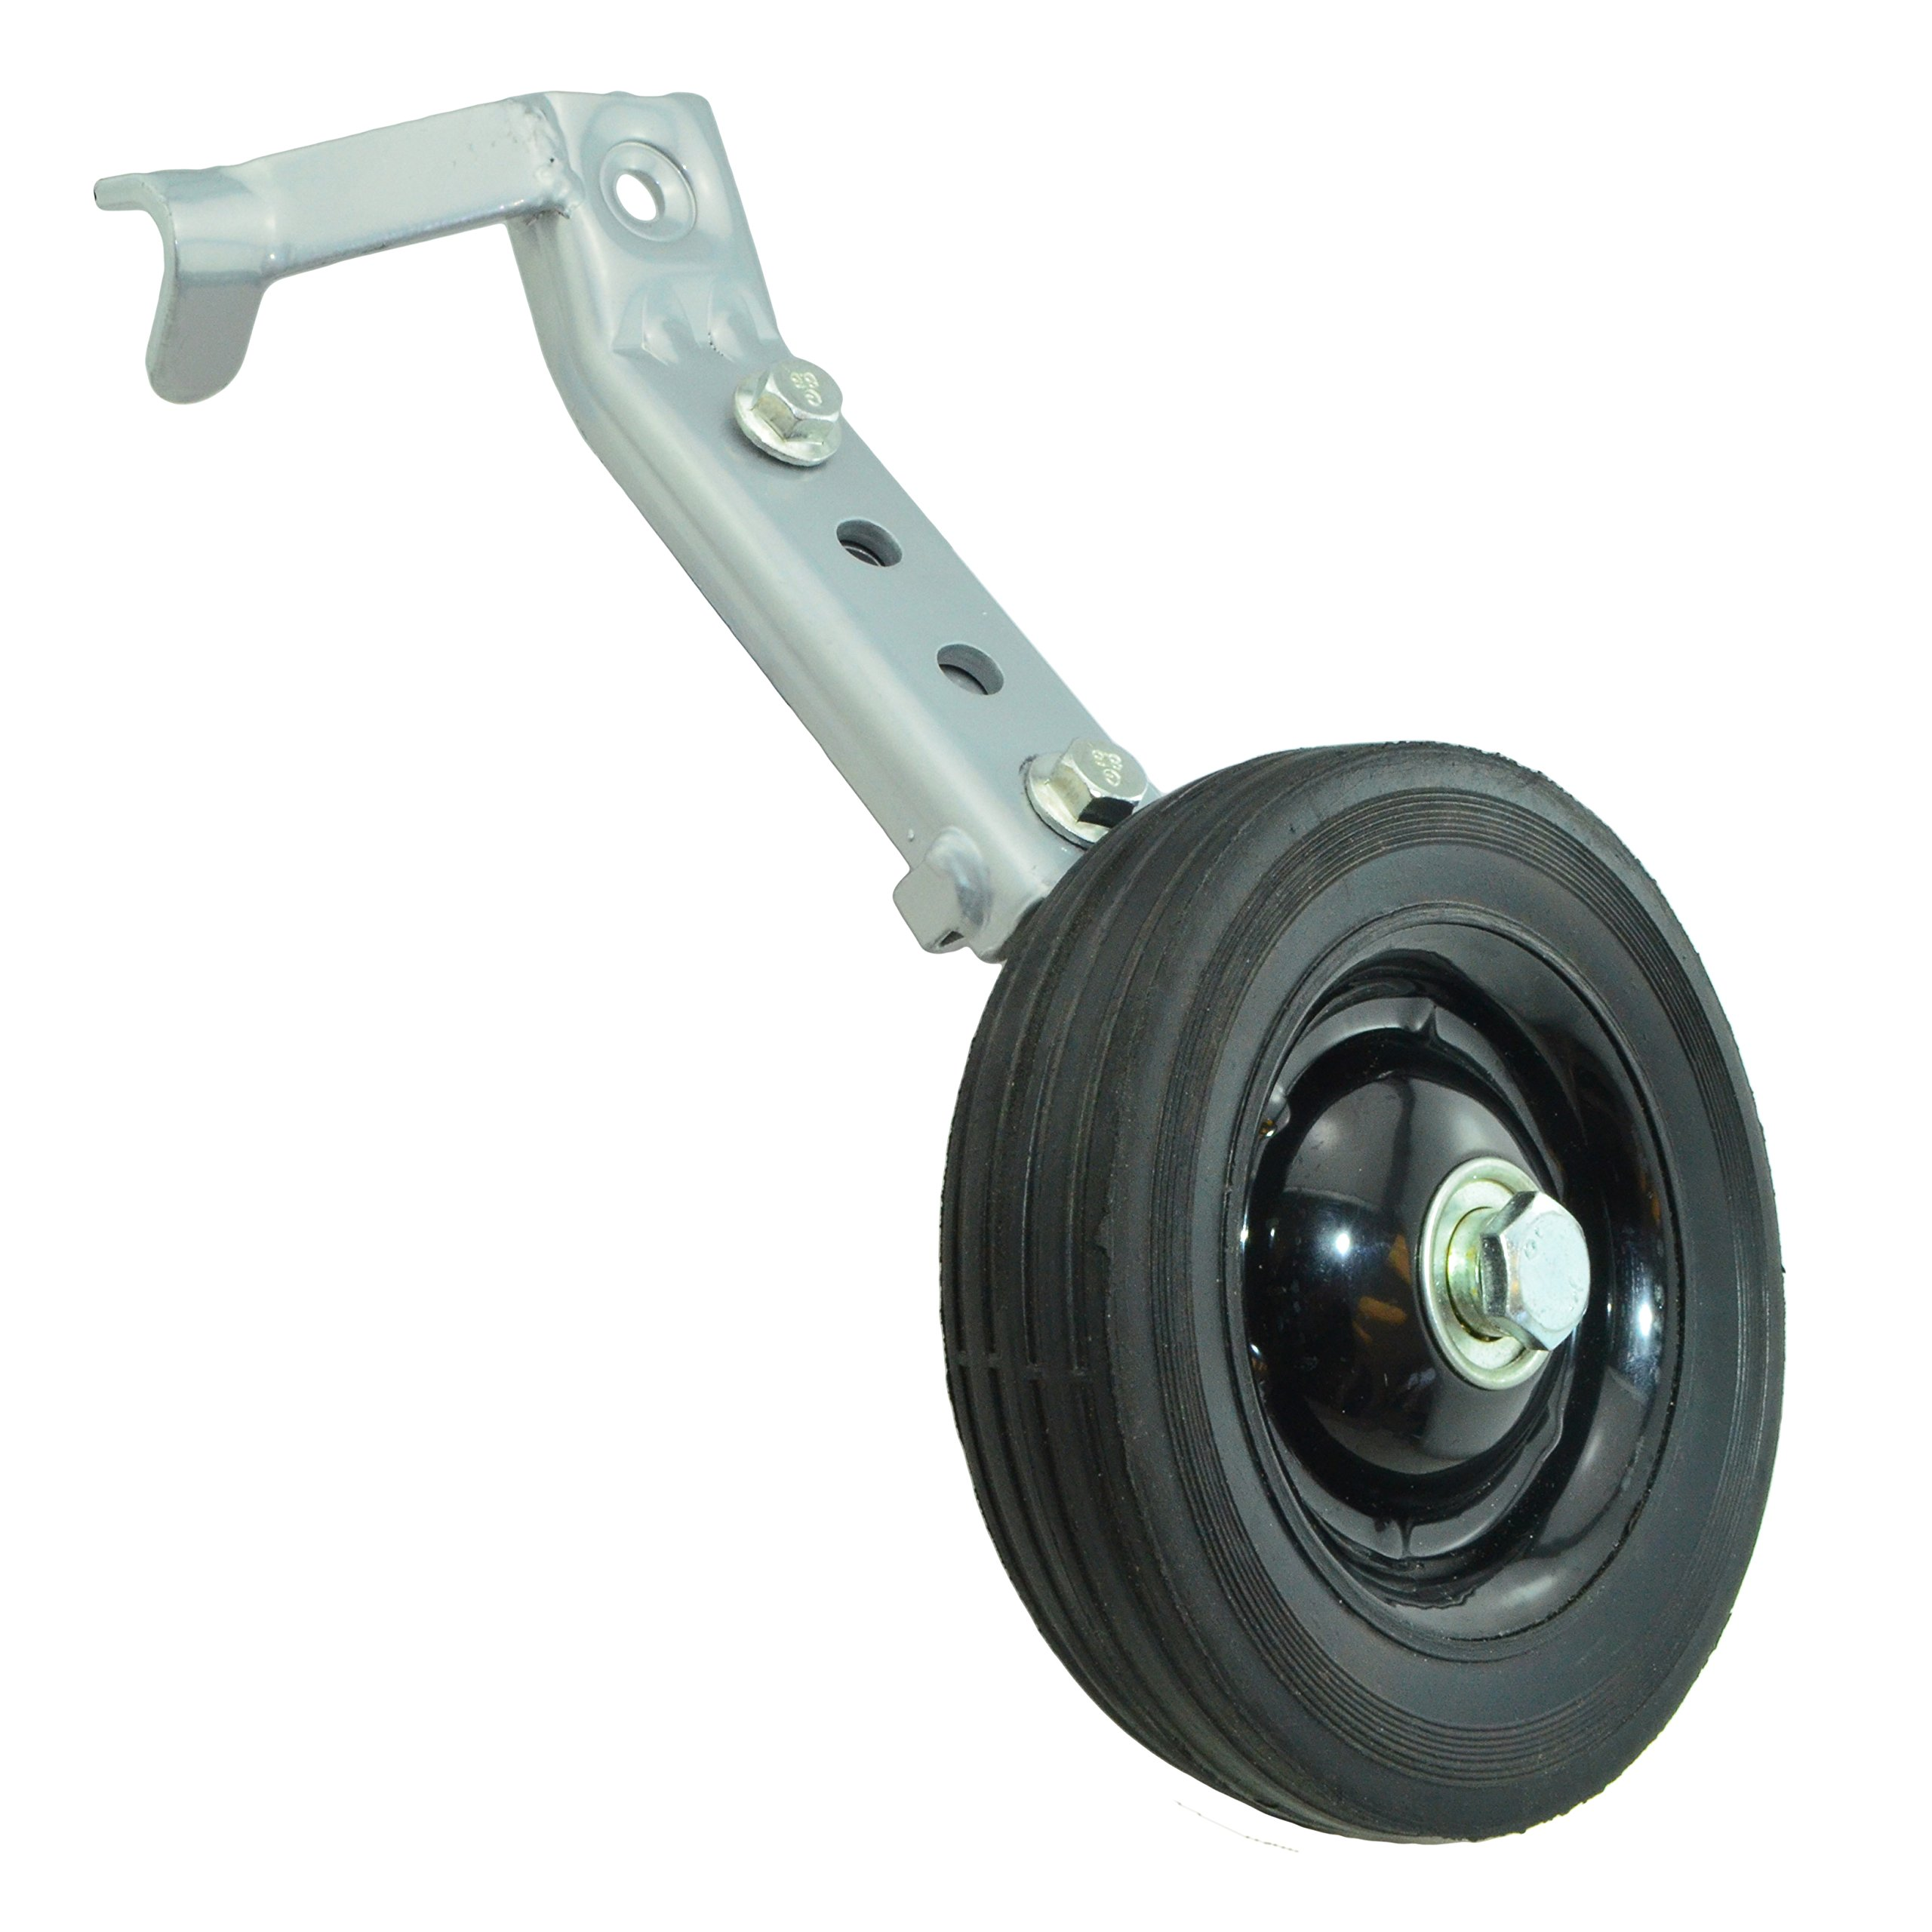 """Lumintrail Heavy Duty Adjustable Bike Training Wheels for 20"""" to 26"""" Bicycles by Lumintrail (Image #3)"""